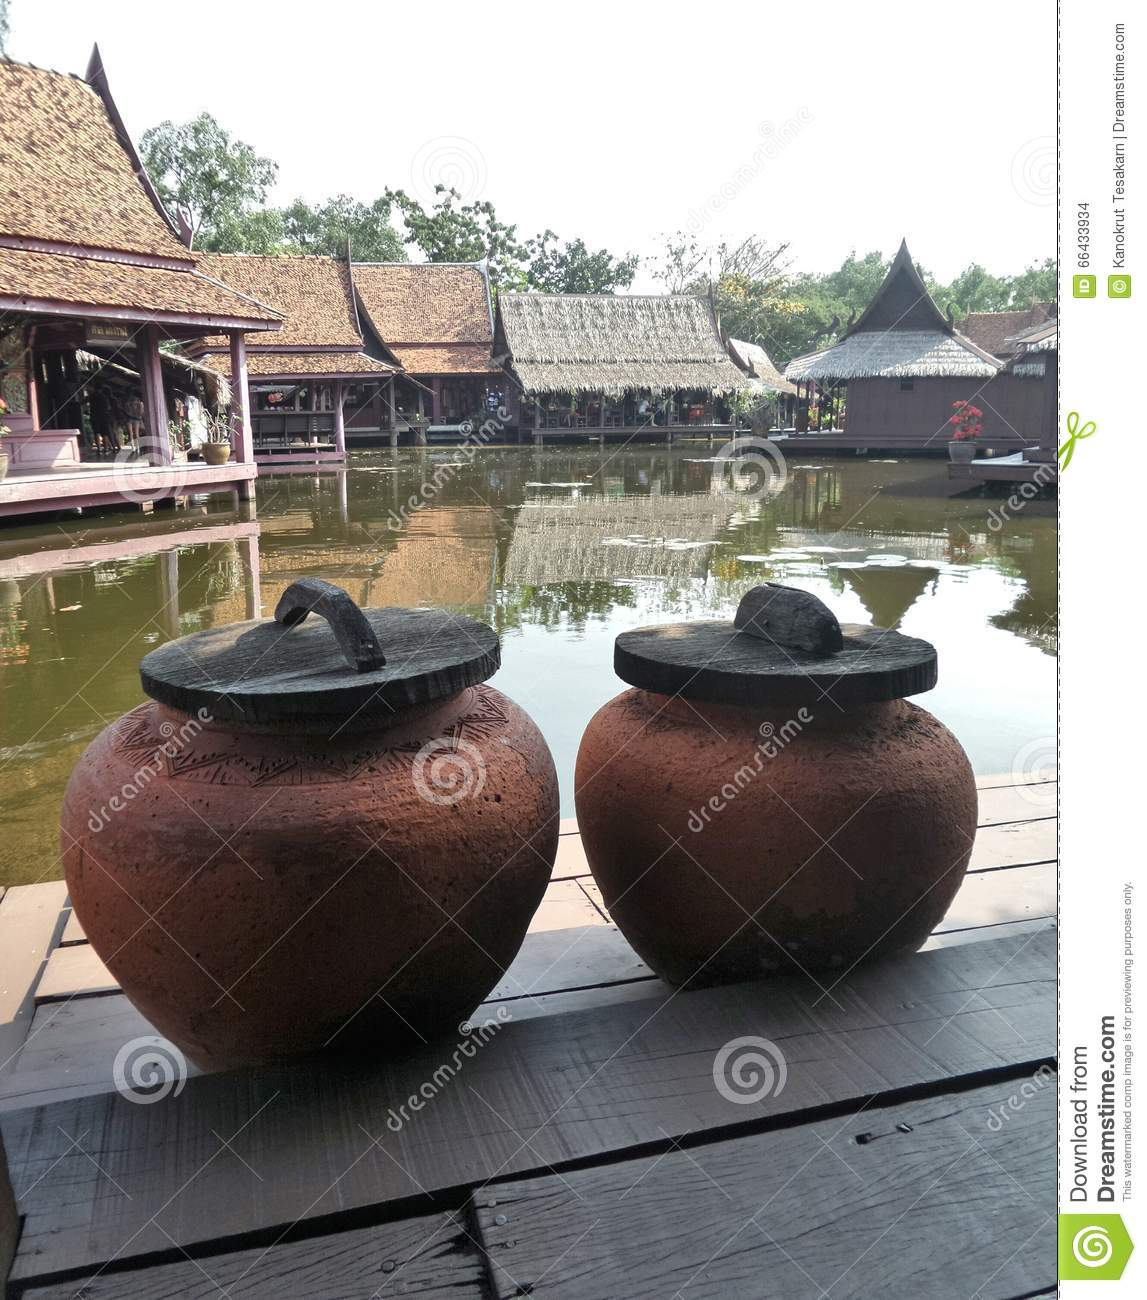 Cover Terrace: Water Jar With Wooden Cover On Terrace Stock Photo